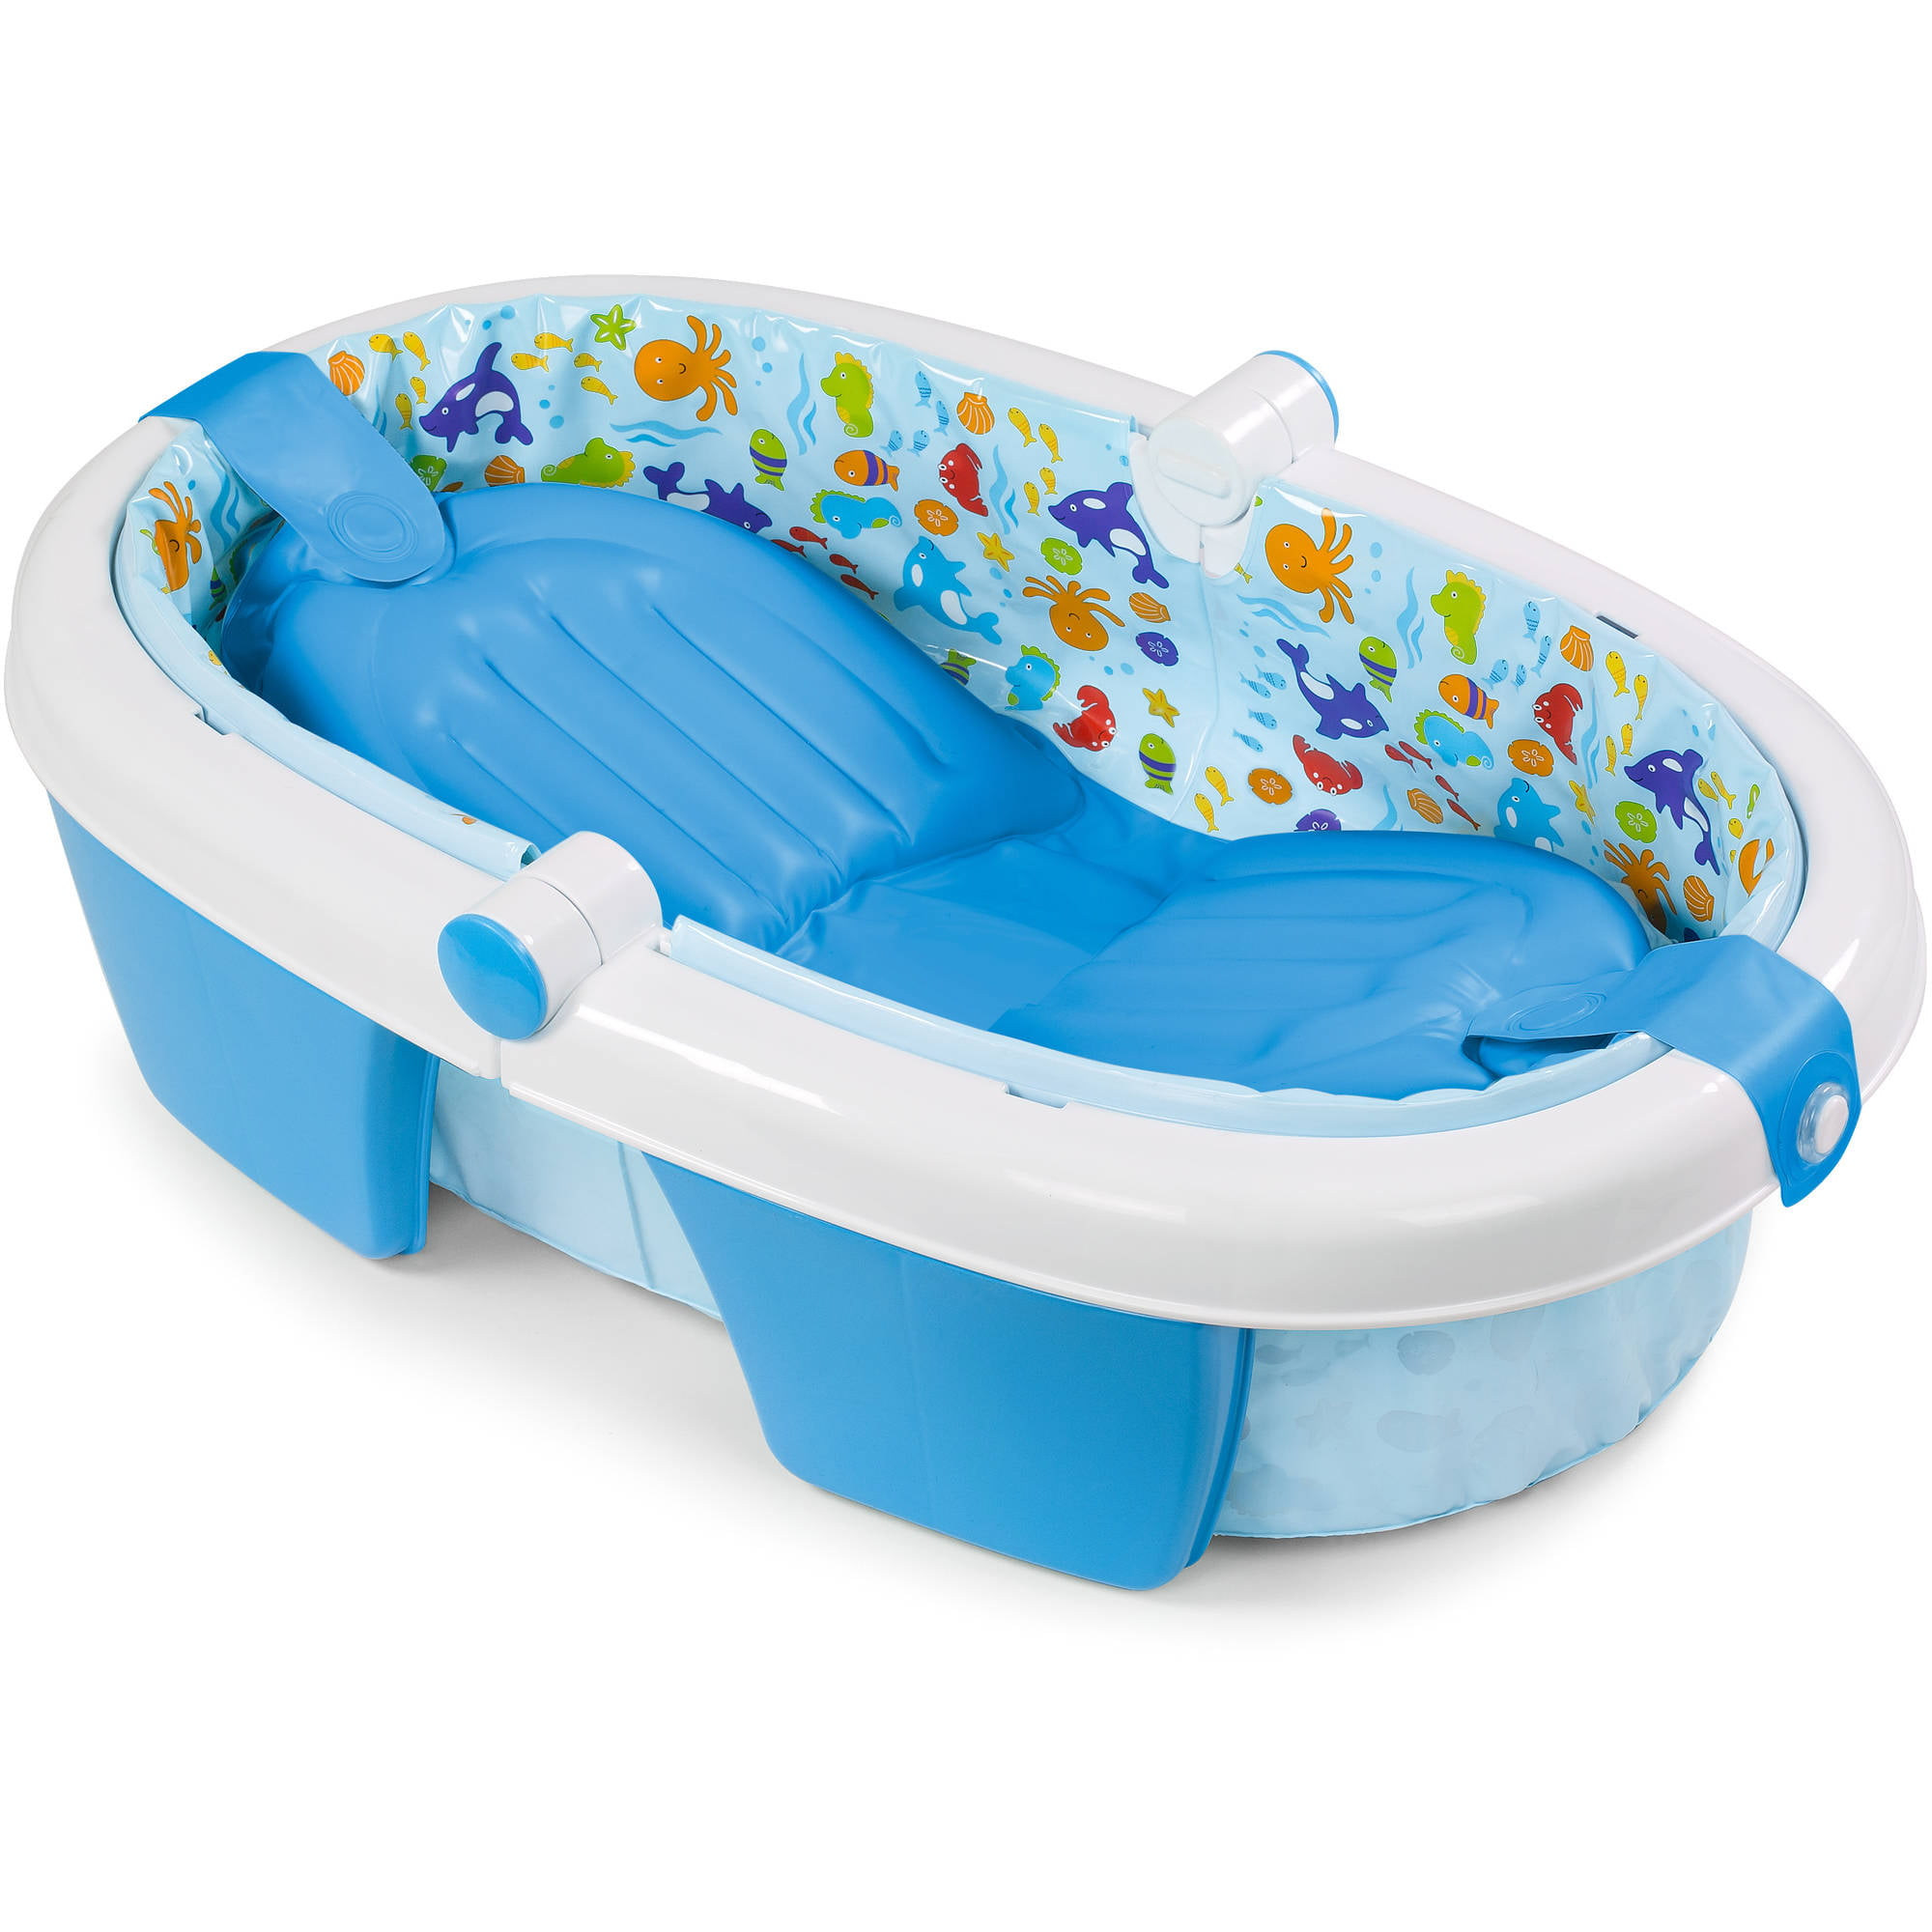 Fisher-Price Whale of a Tub - Walmart.com